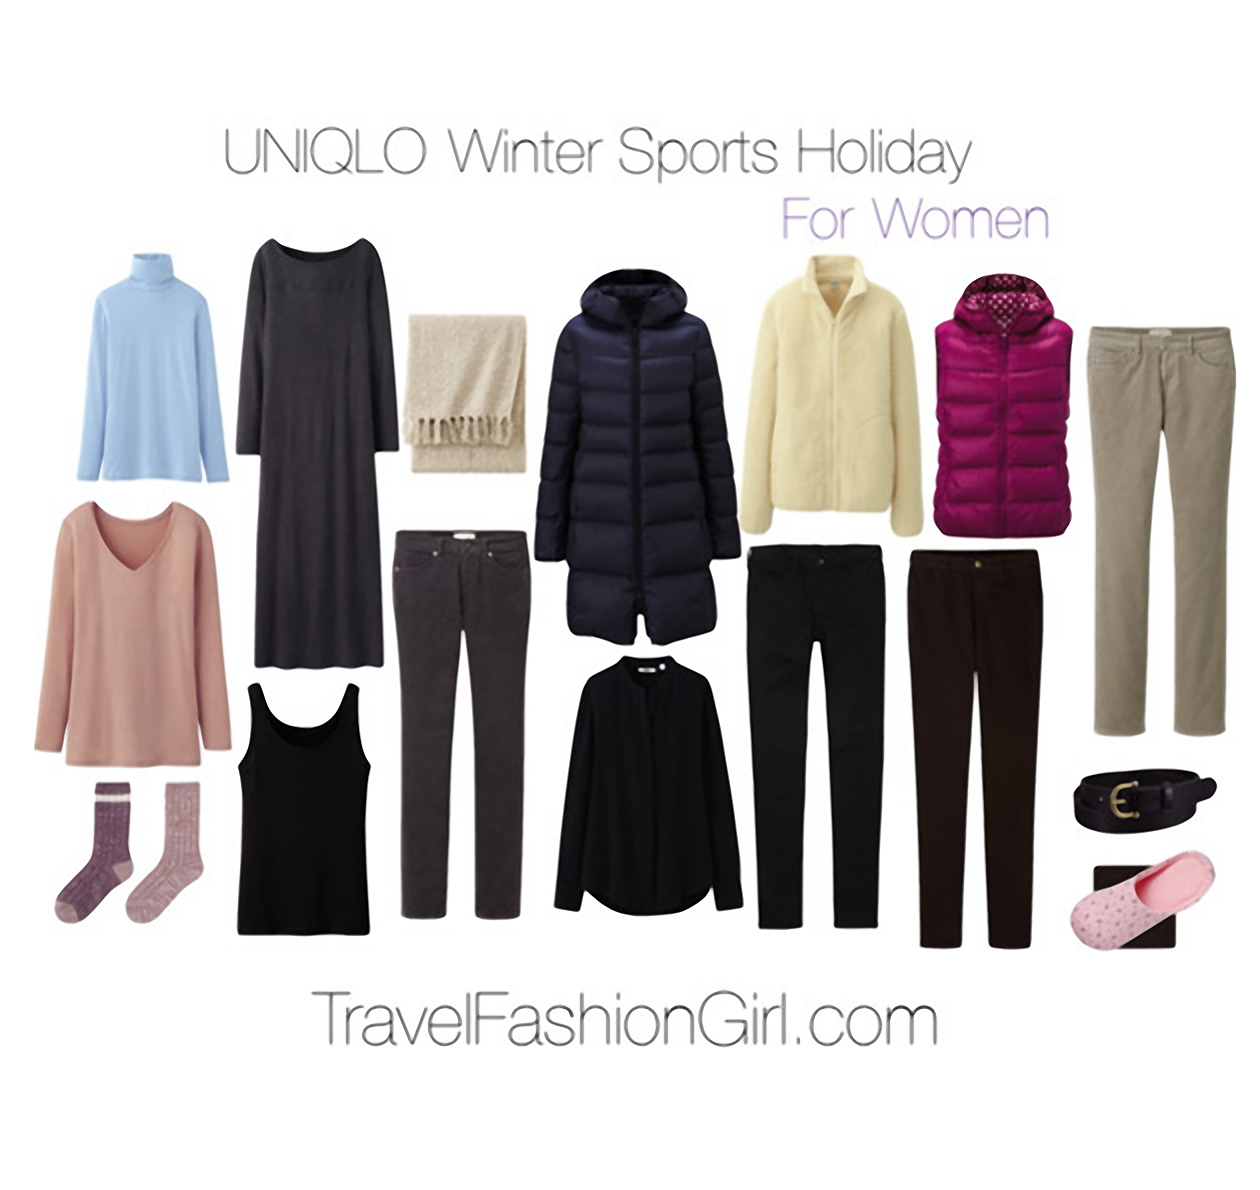 ultralight-warmth-uniqlo-winter-sports-holiday-packing-list